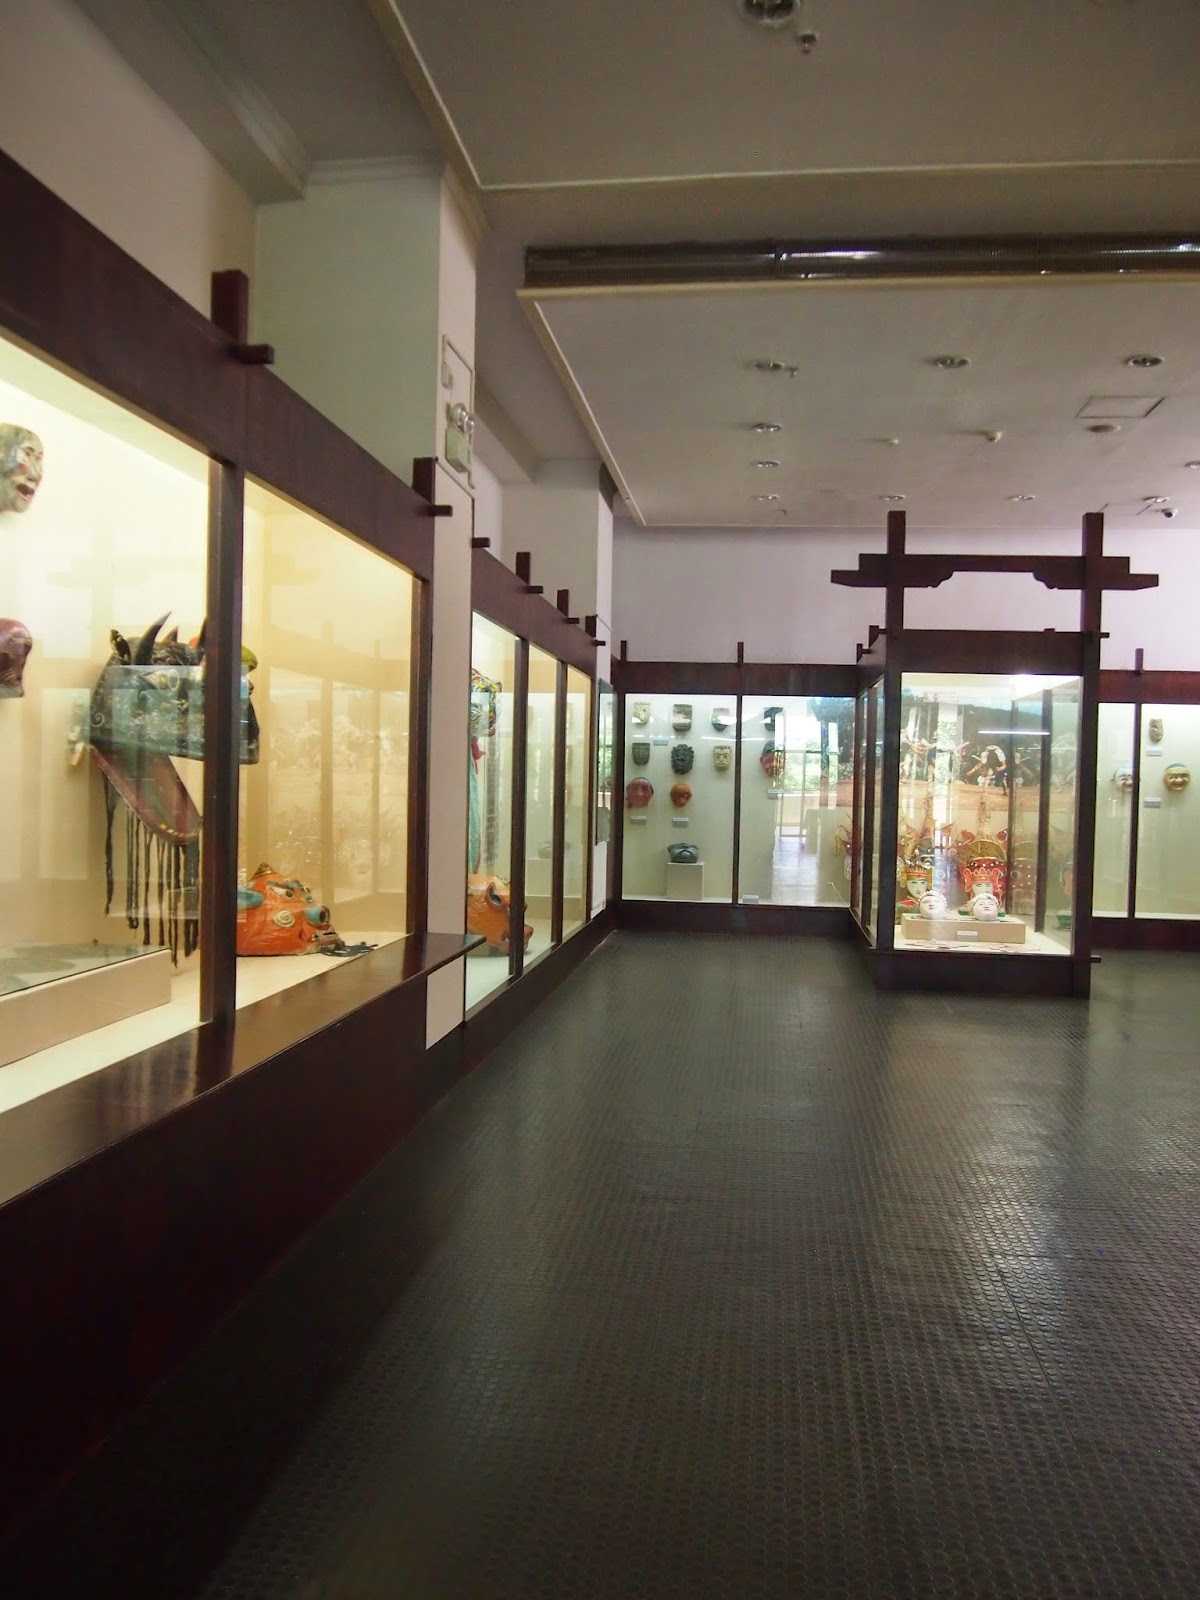 The mask exhibit at the Yunnan Nationalities Museum in Kunming, China